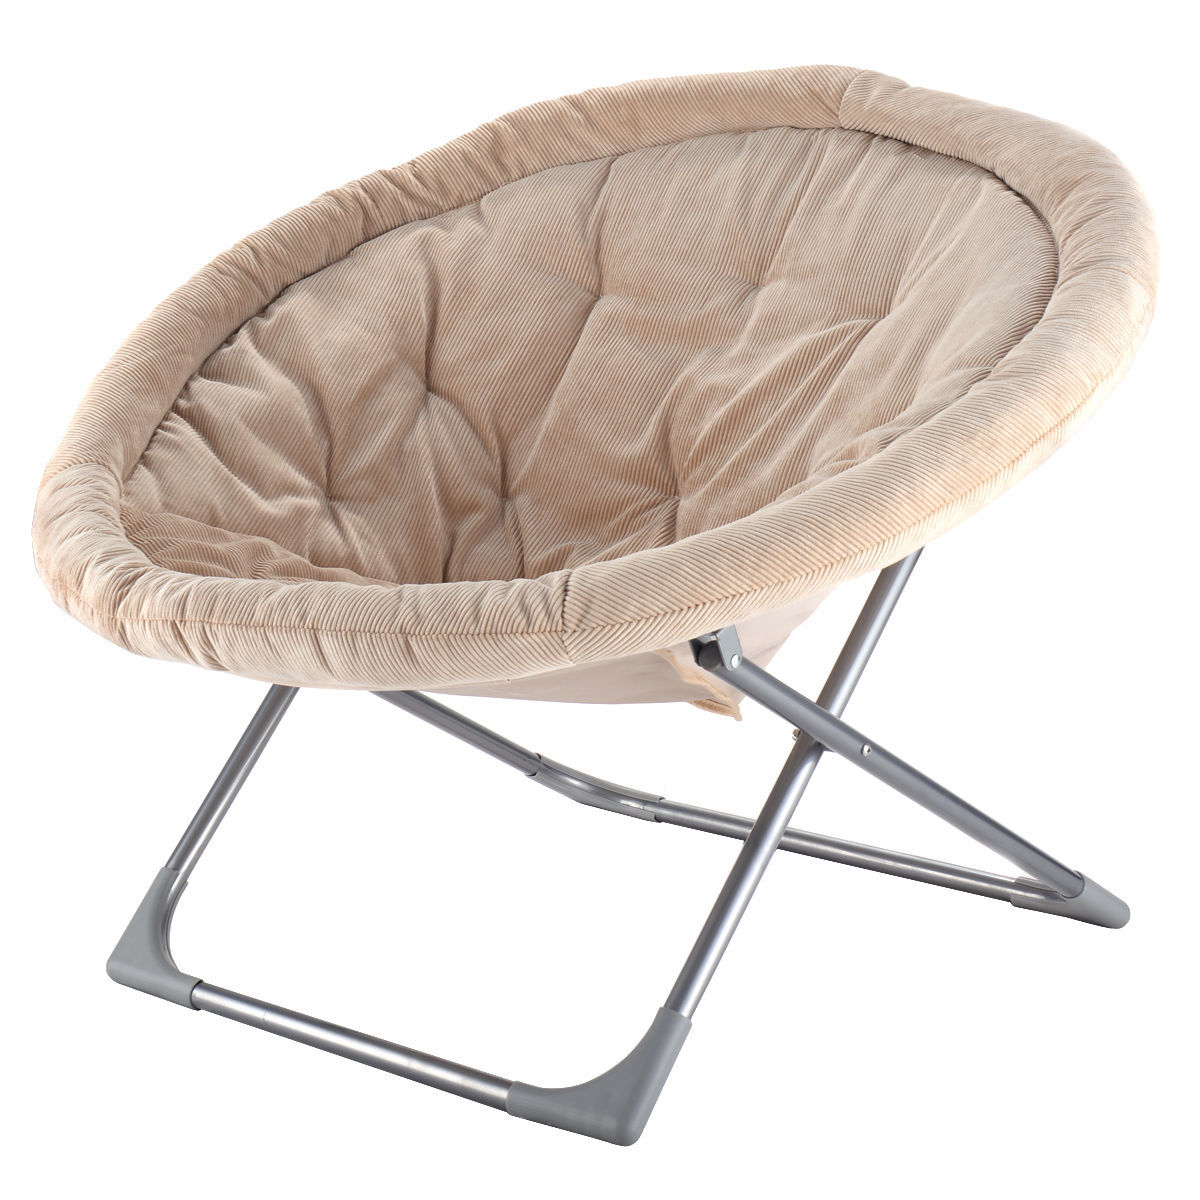 oversized large folding saucer moon chair corduroy round seat living